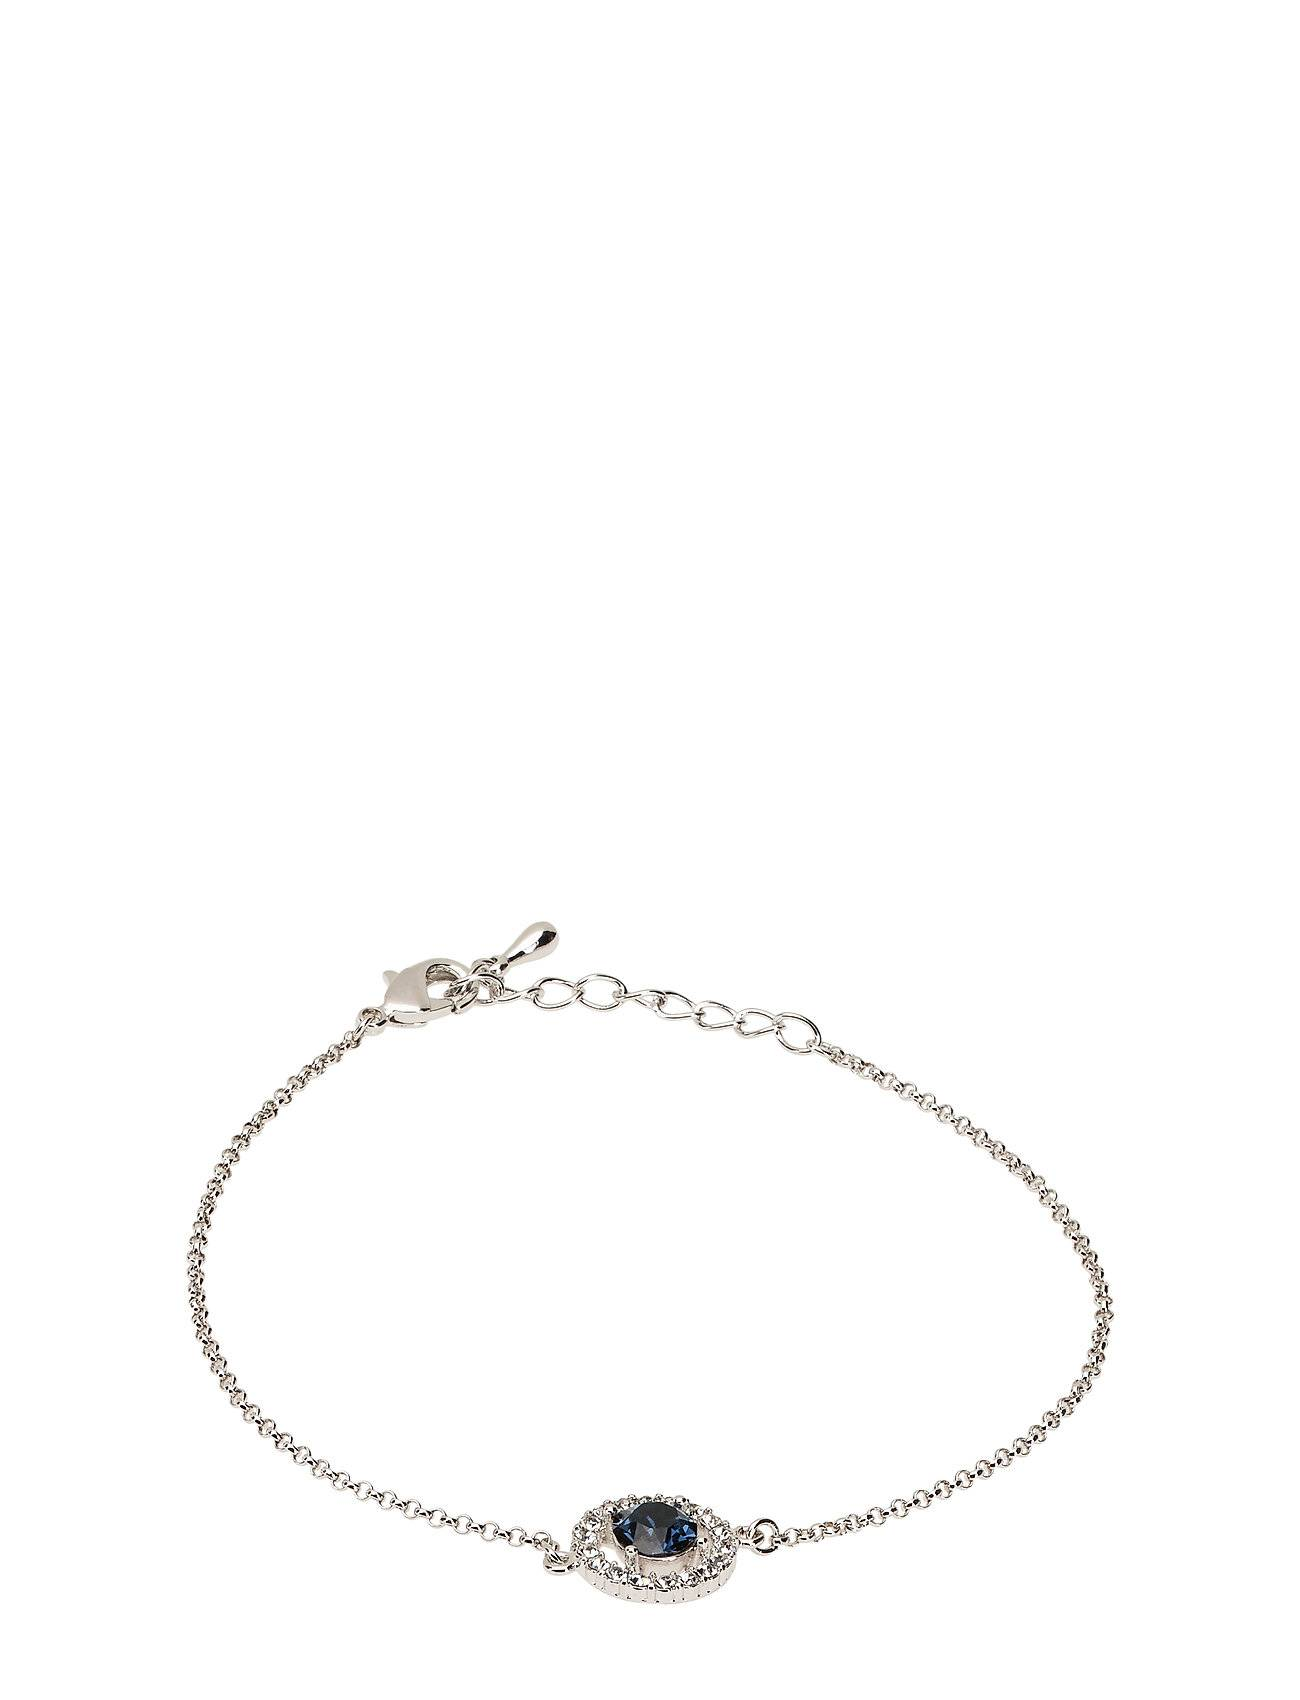 LILY AND ROSE Miss Miranda Bracelet - Silver Blue Accessories Jewellery Bracelets Chain Bracelets Hopea LILY AND ROSE